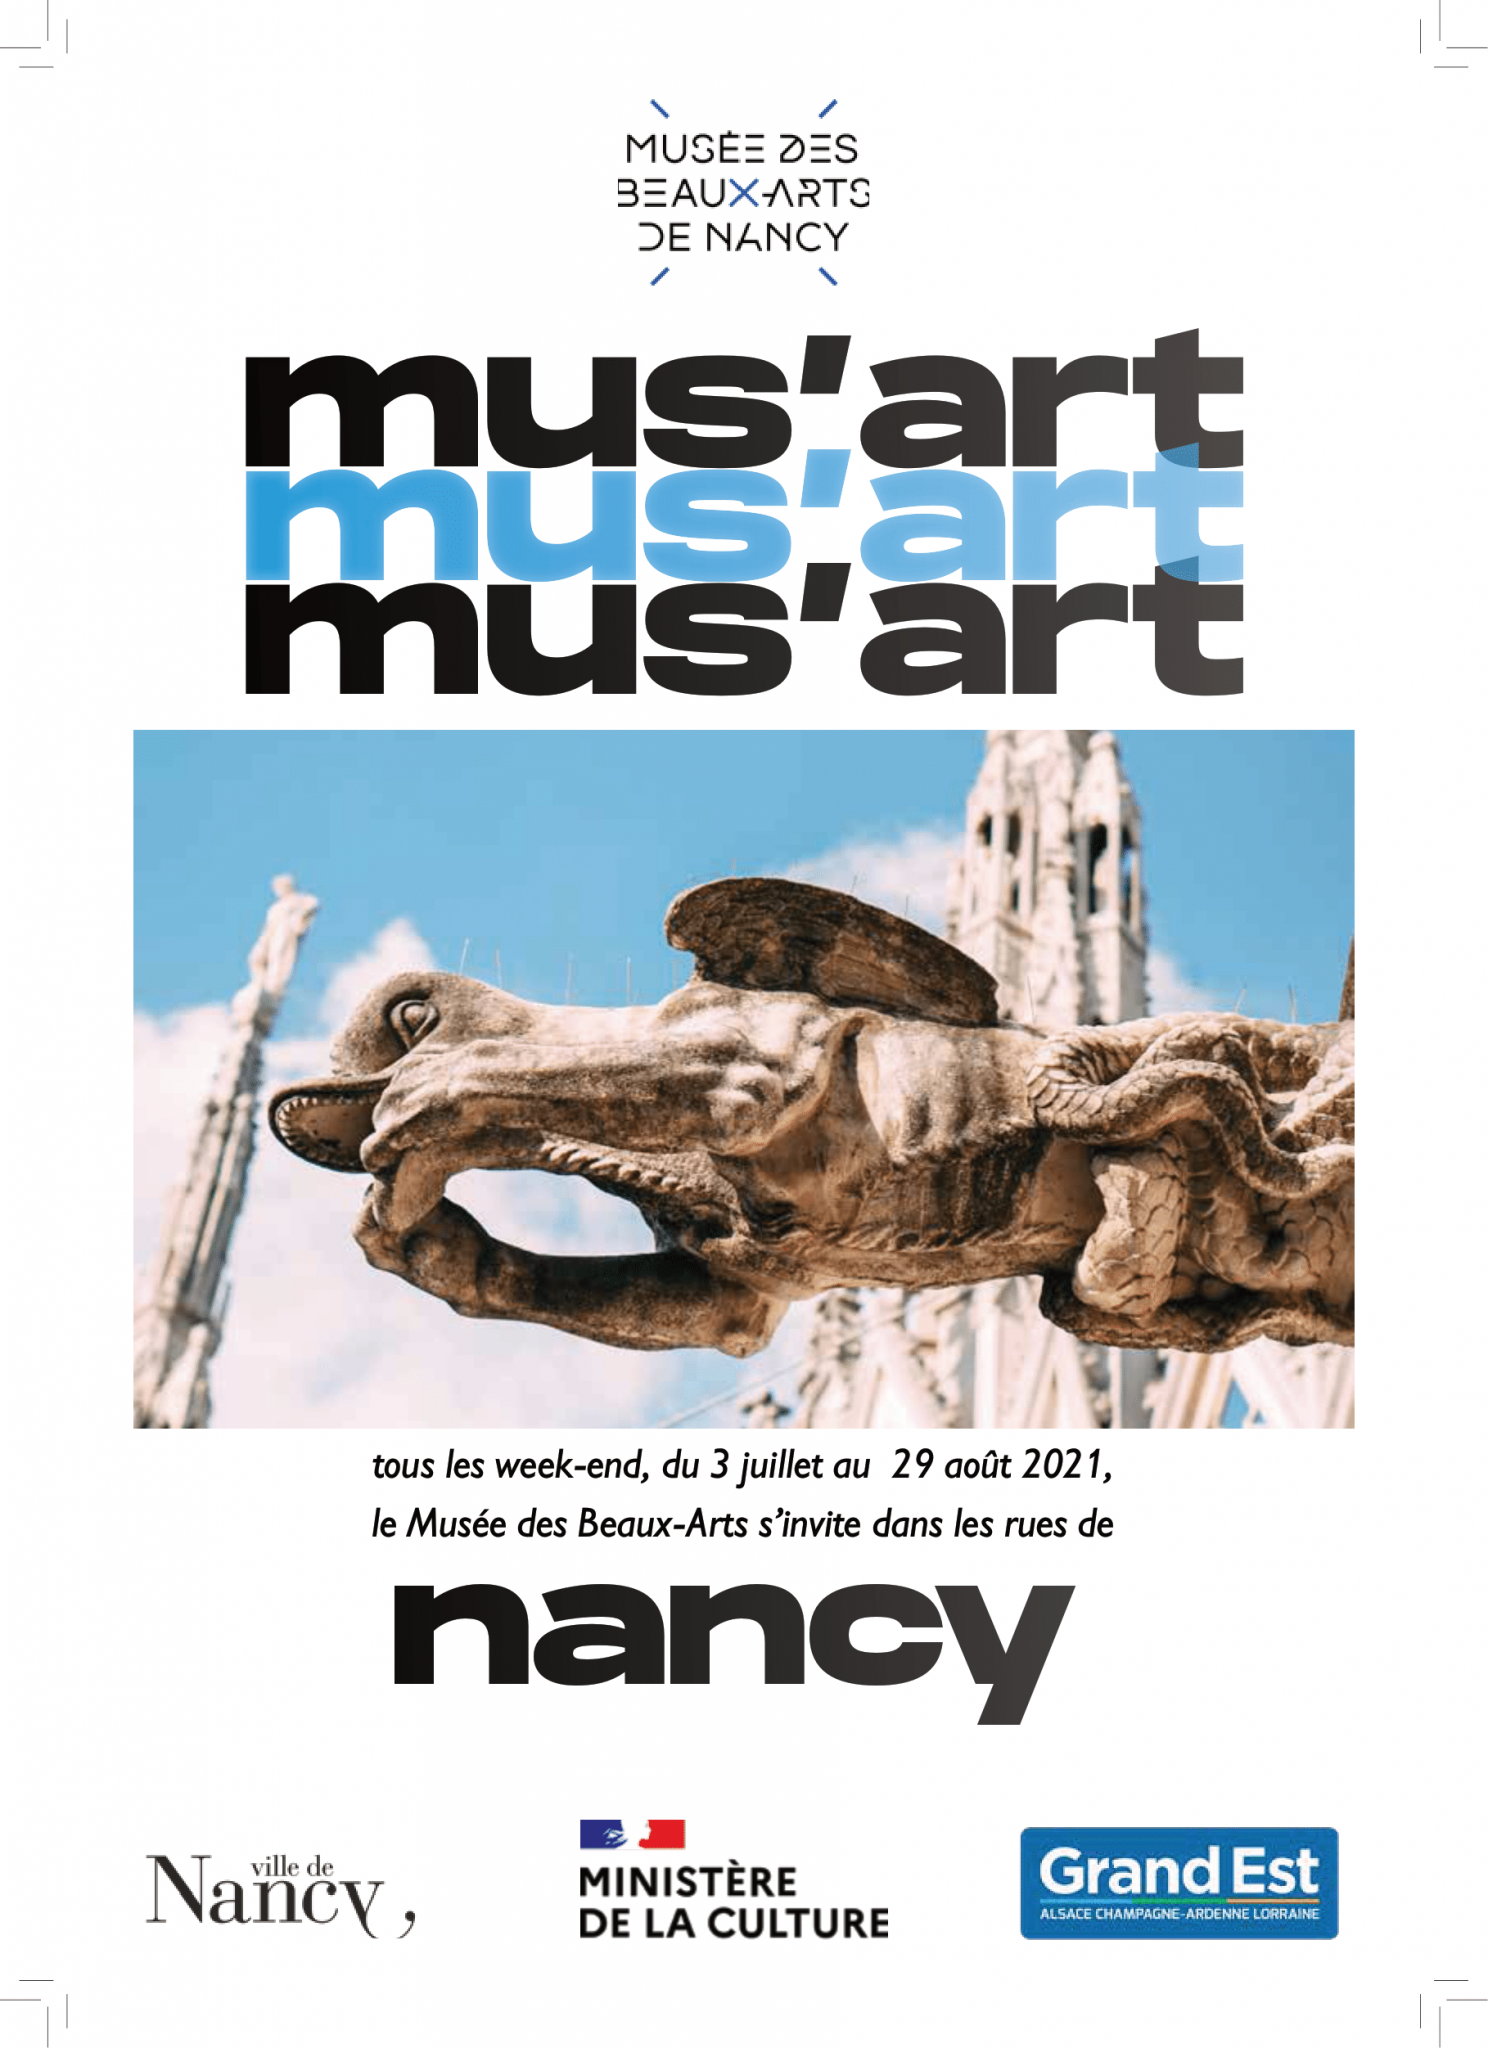 Mus'art Nancy